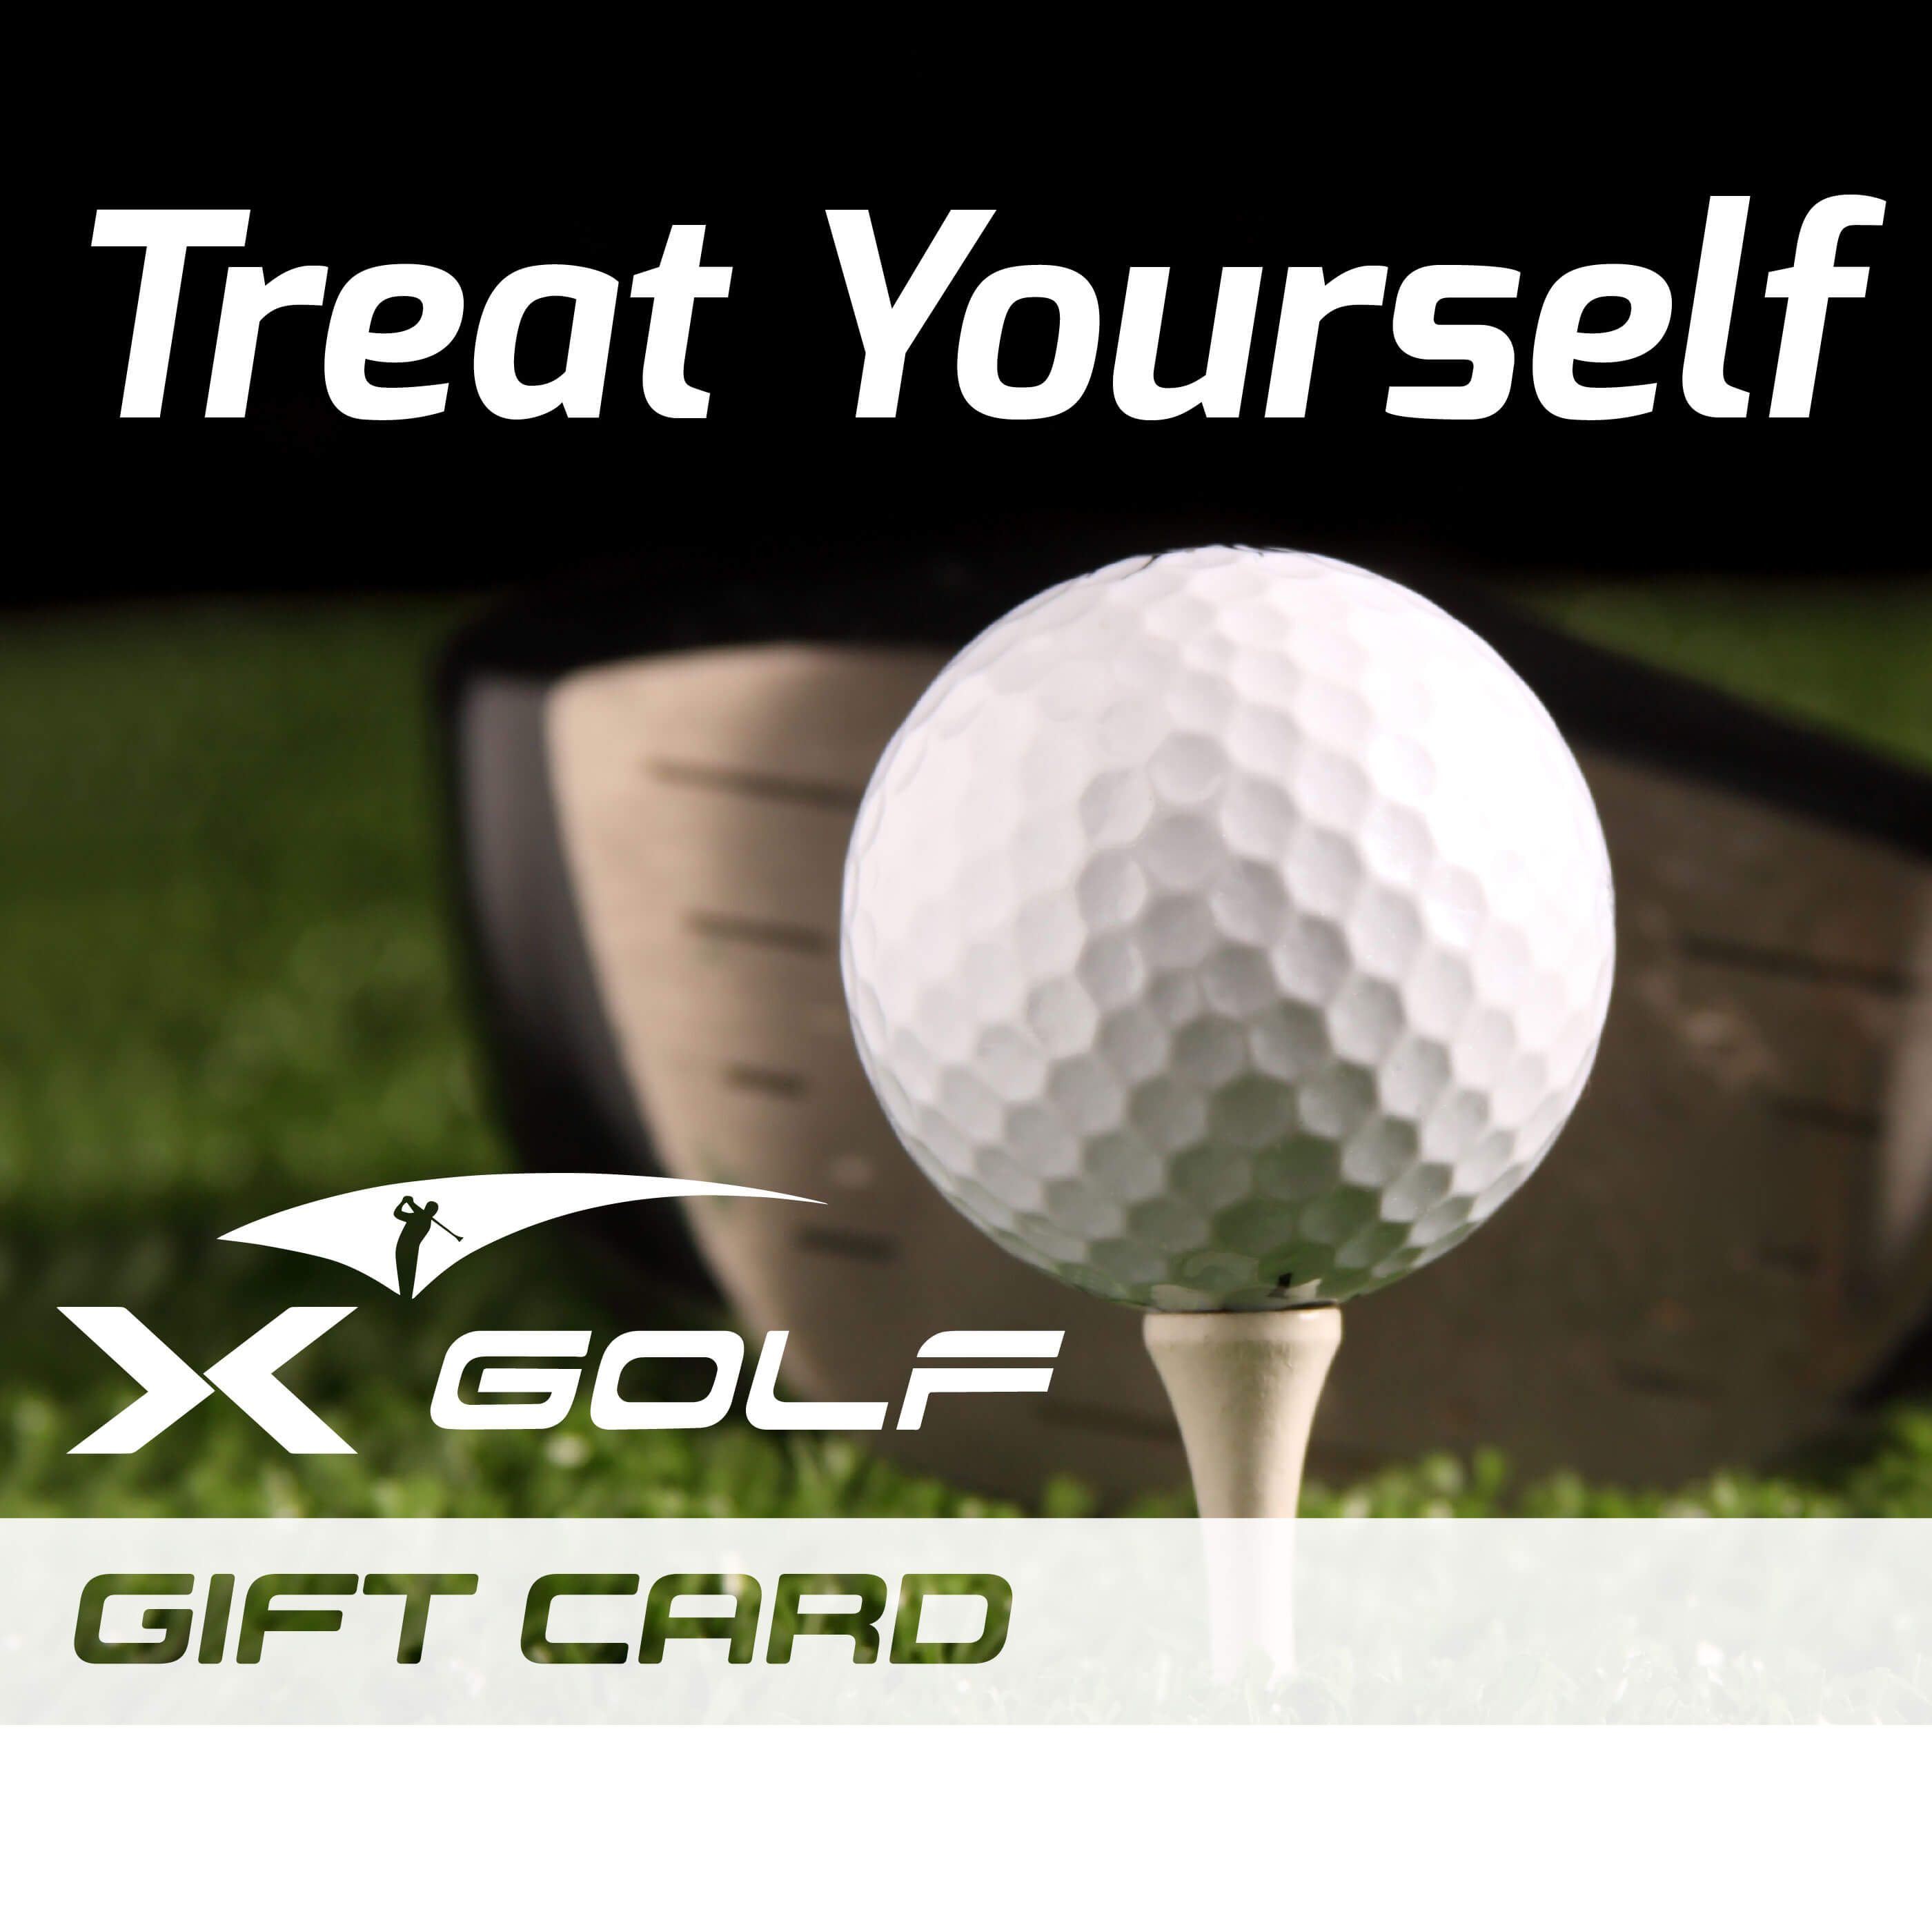 Free golf gift certificate templates for word images certificate free golf certificate templates for word images certificate golf certificate template word images certificate design and alramifo Choice Image